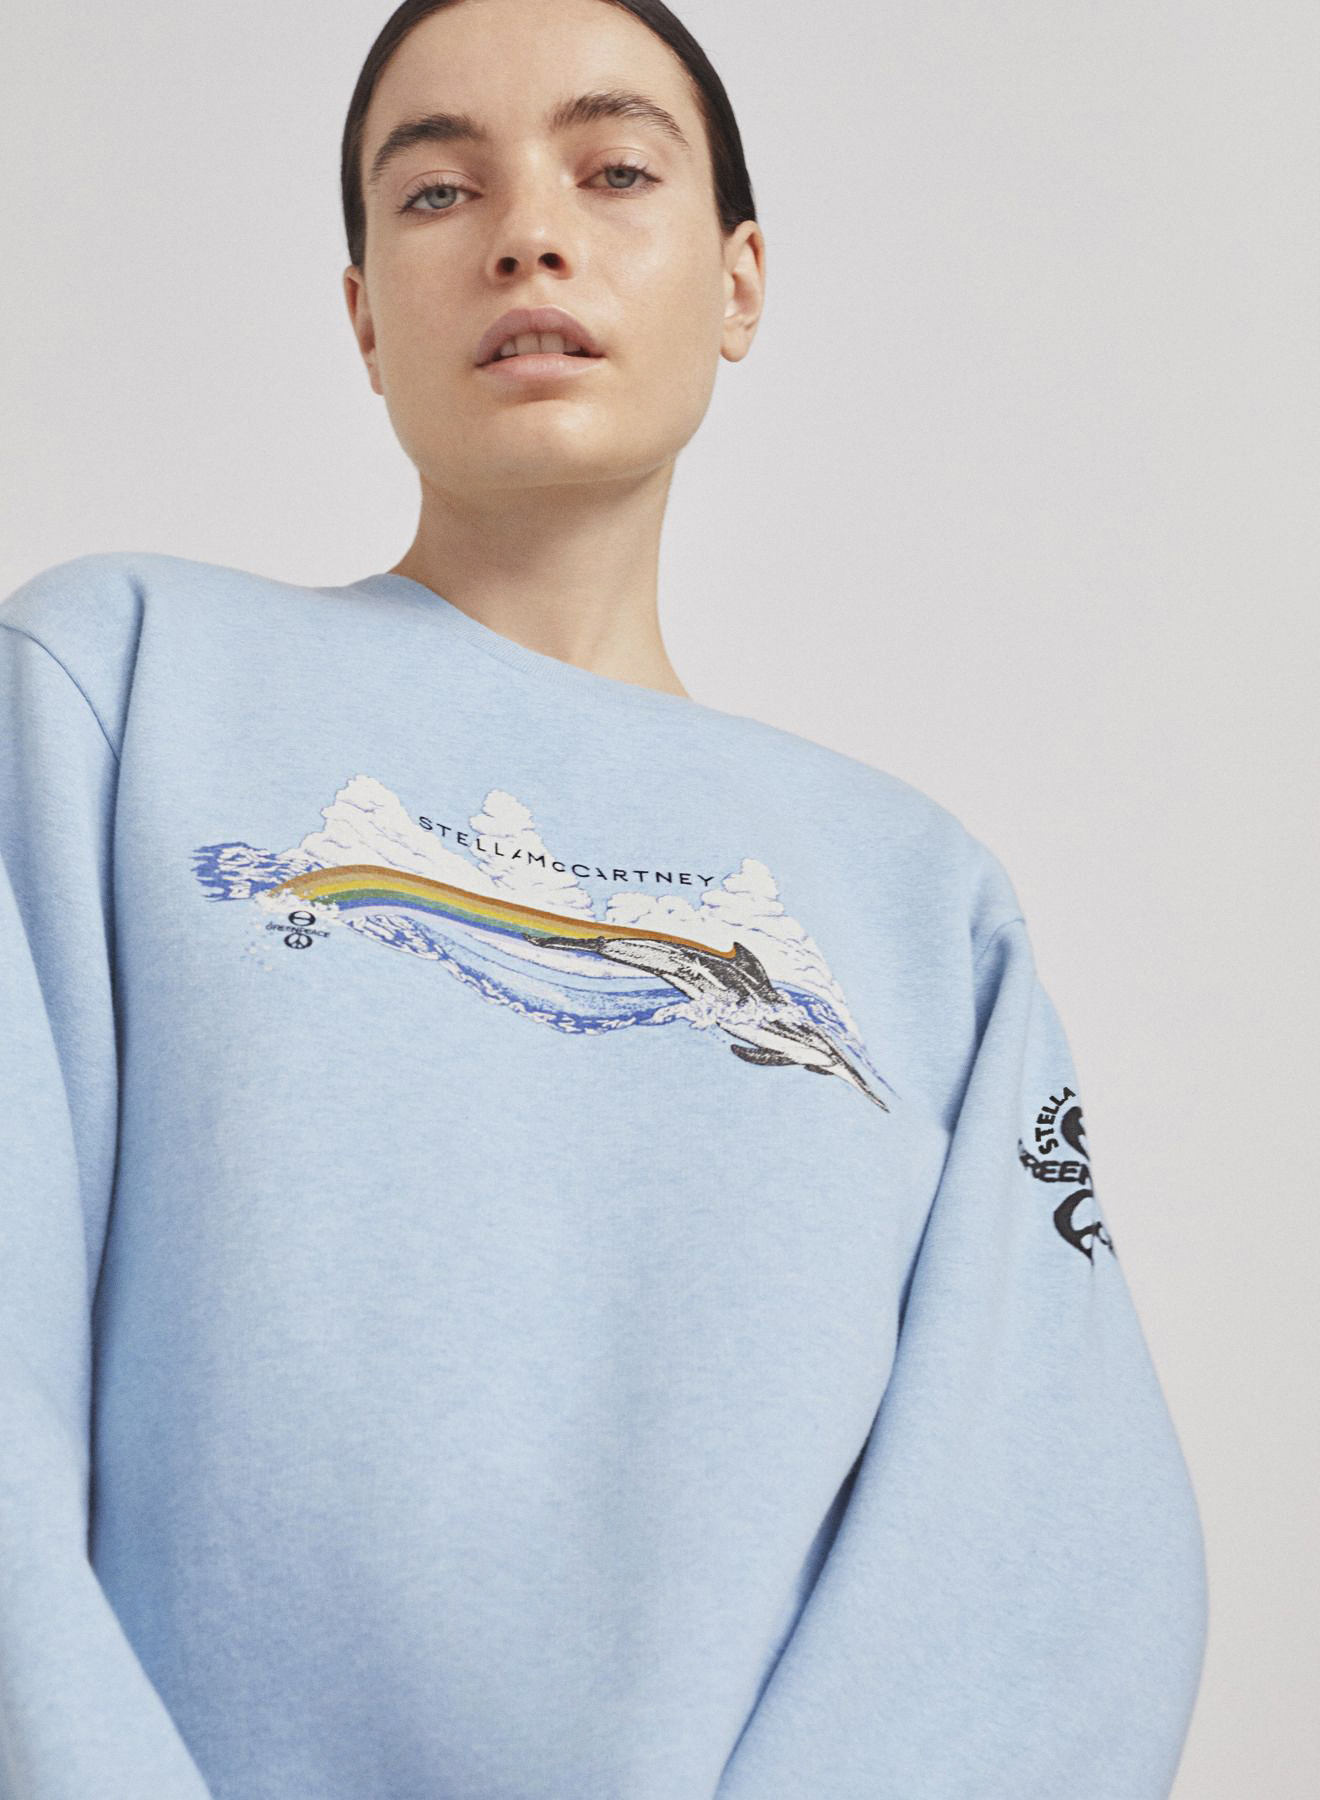 Stella McCartney's sweatshirt in support of the Greenpeace deforestation campaign.